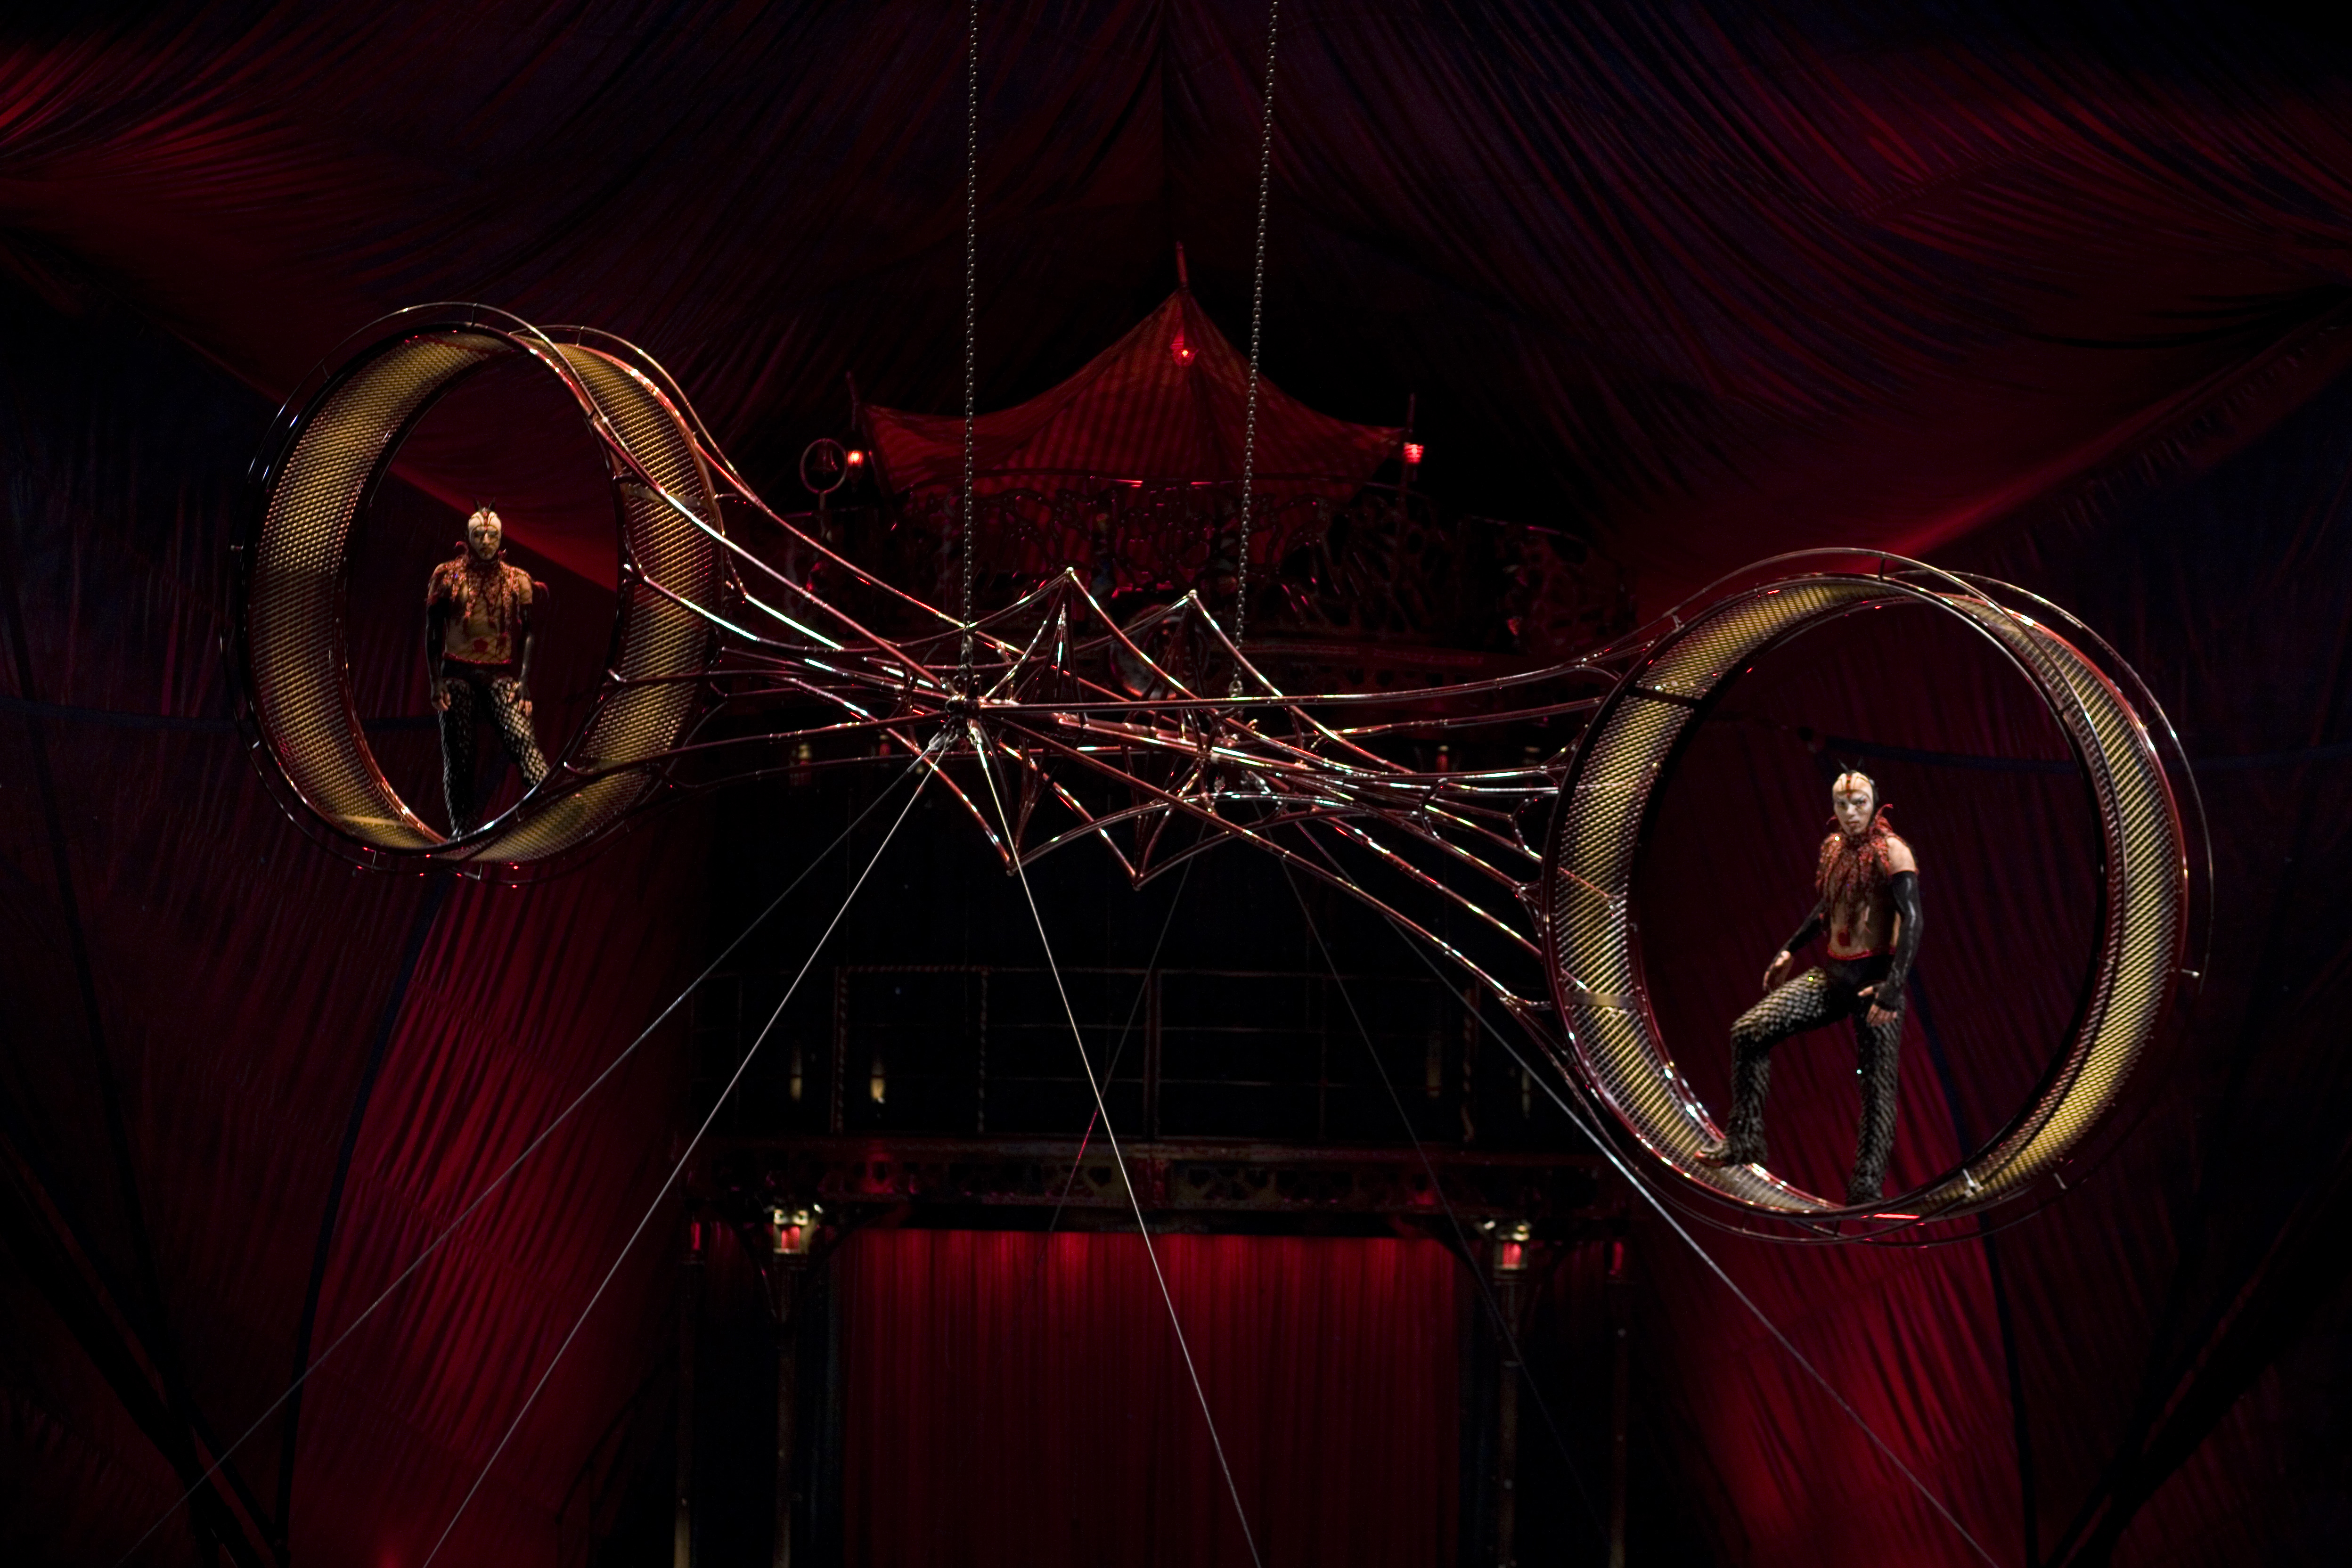 TIMELINE: The history of the Cirque du Soleil